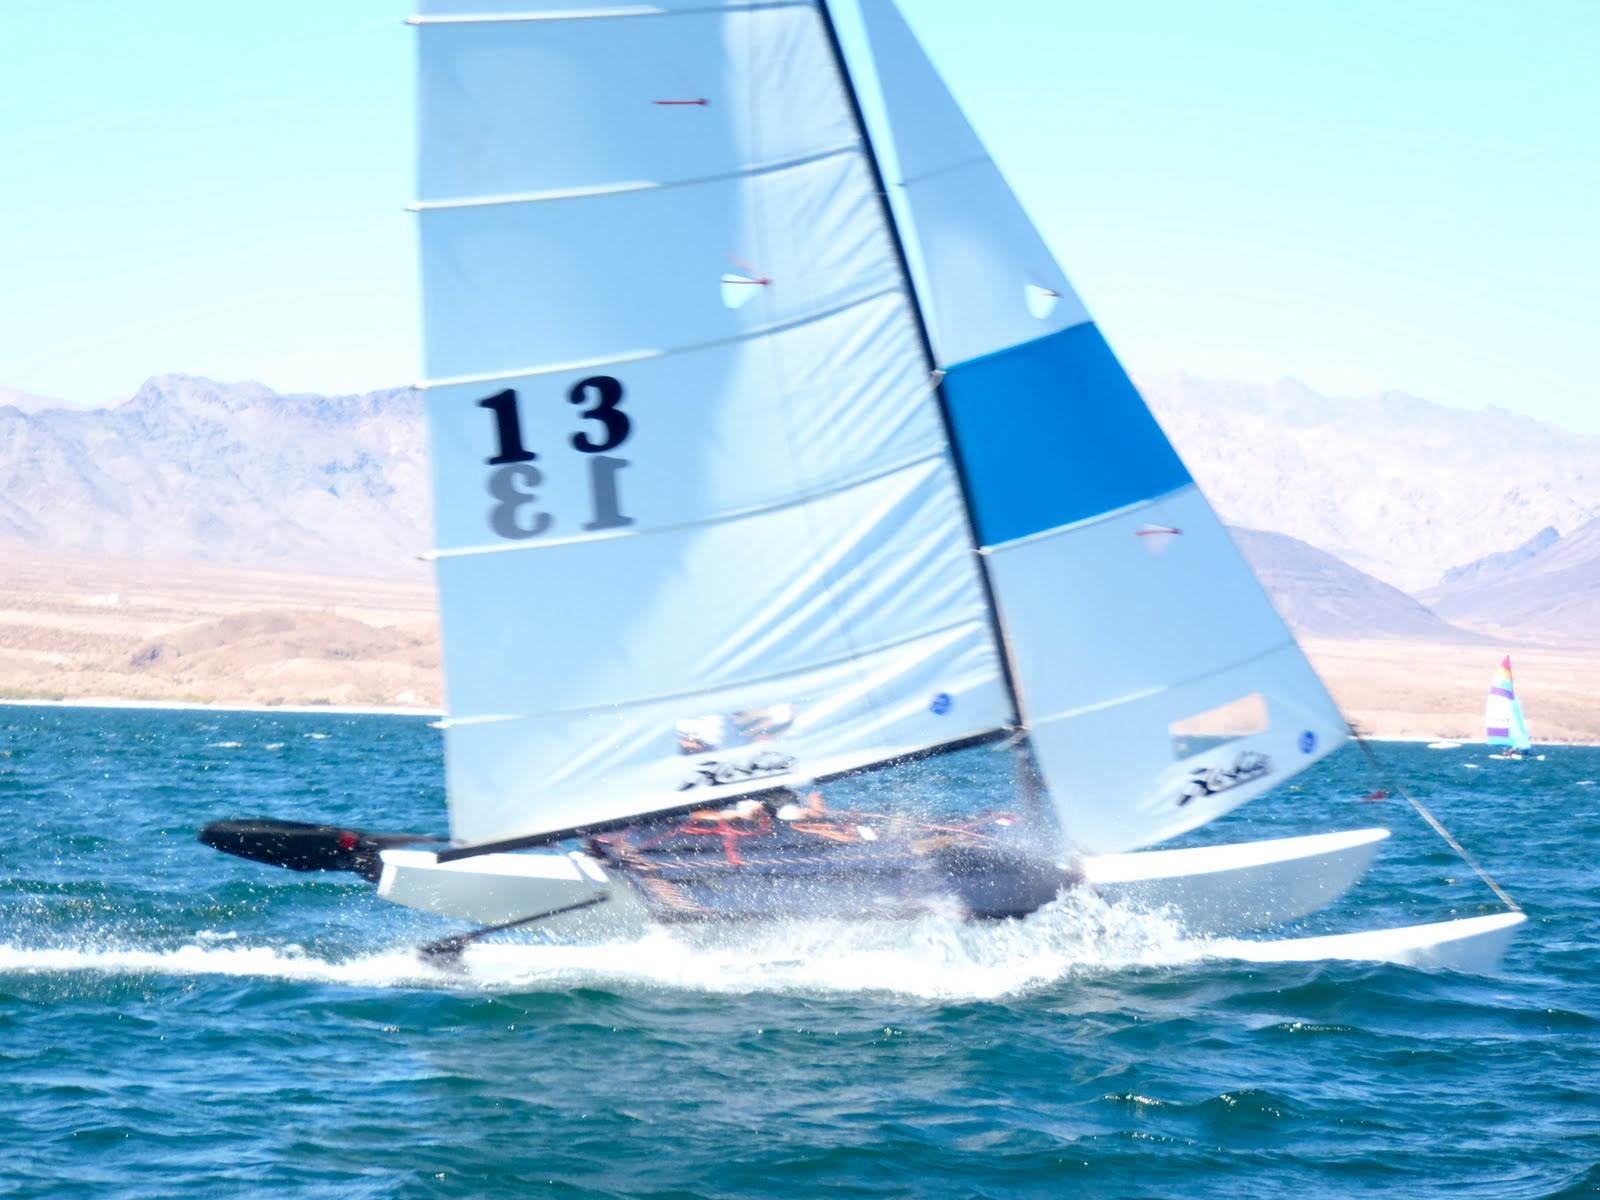 1ee26f2a96d ... A of 1.2 miles and courses were typically Start–A-B-A-Finish for a  total of 3.6 nautical miles. A total of 16 races were held over the course  of 5 days.